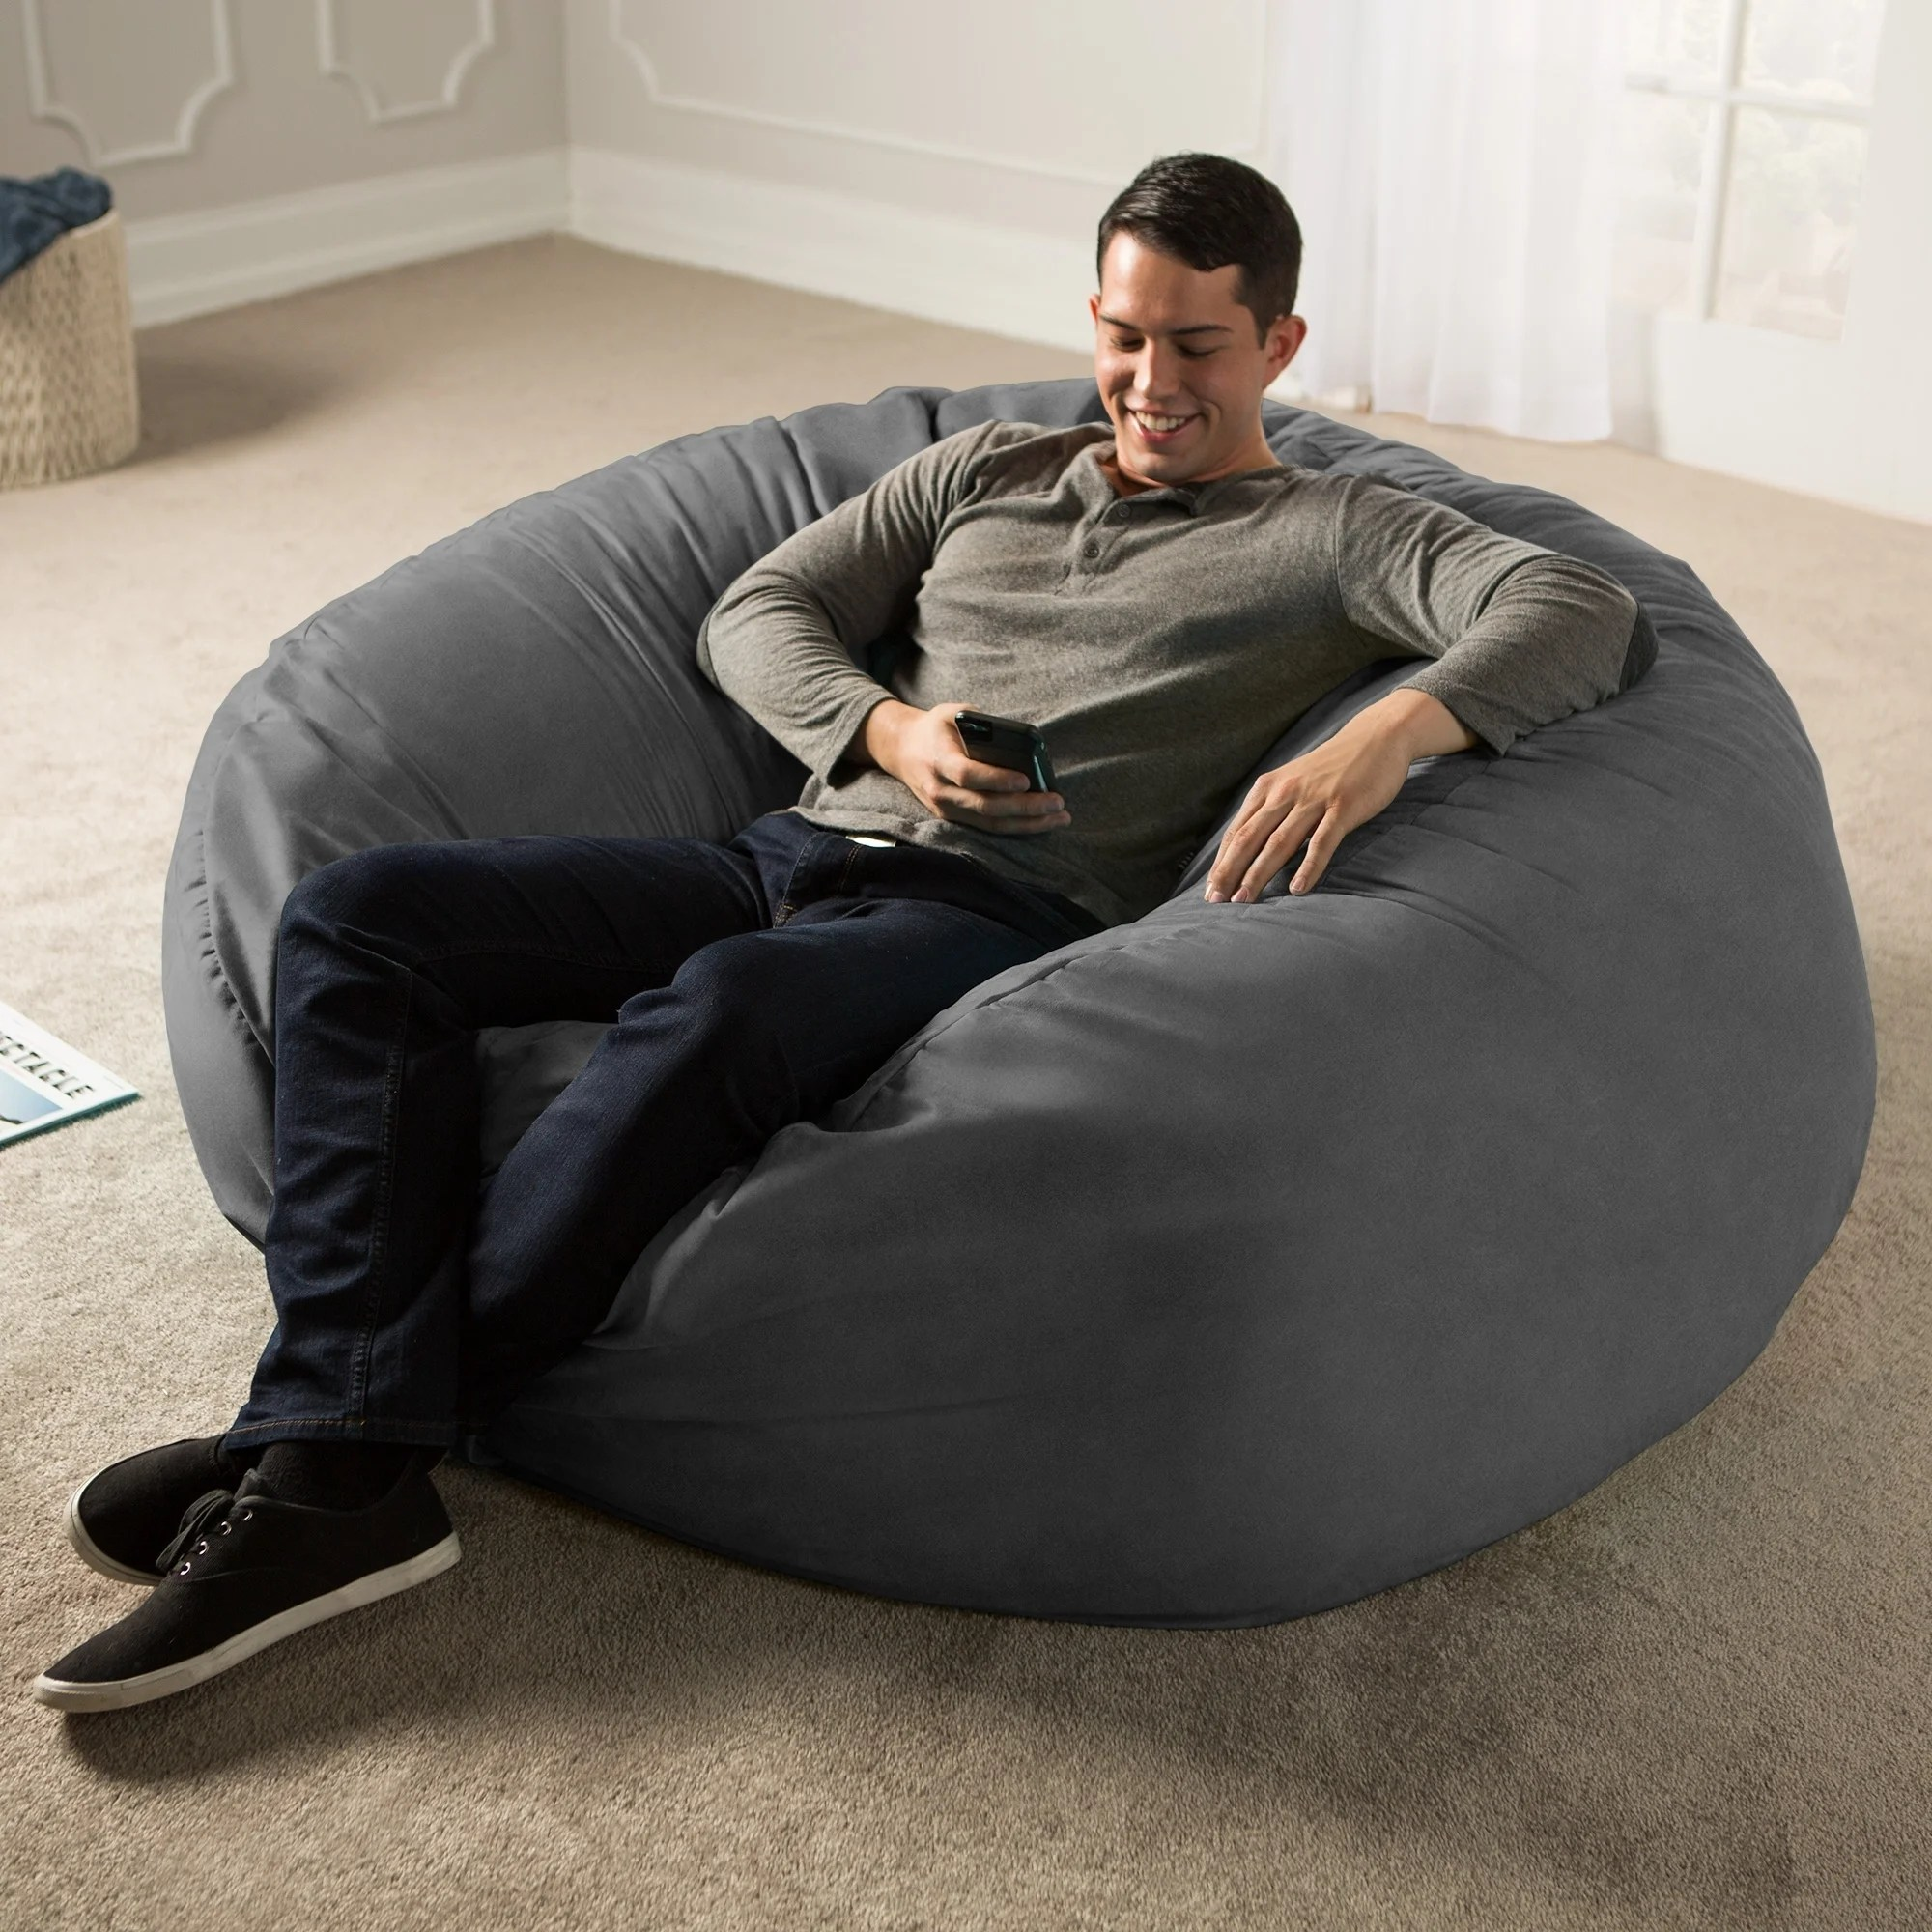 Love Sac Bean Bag Chair Buy Size Extra Large Kids Bean Bag Chairs Online At Overstock